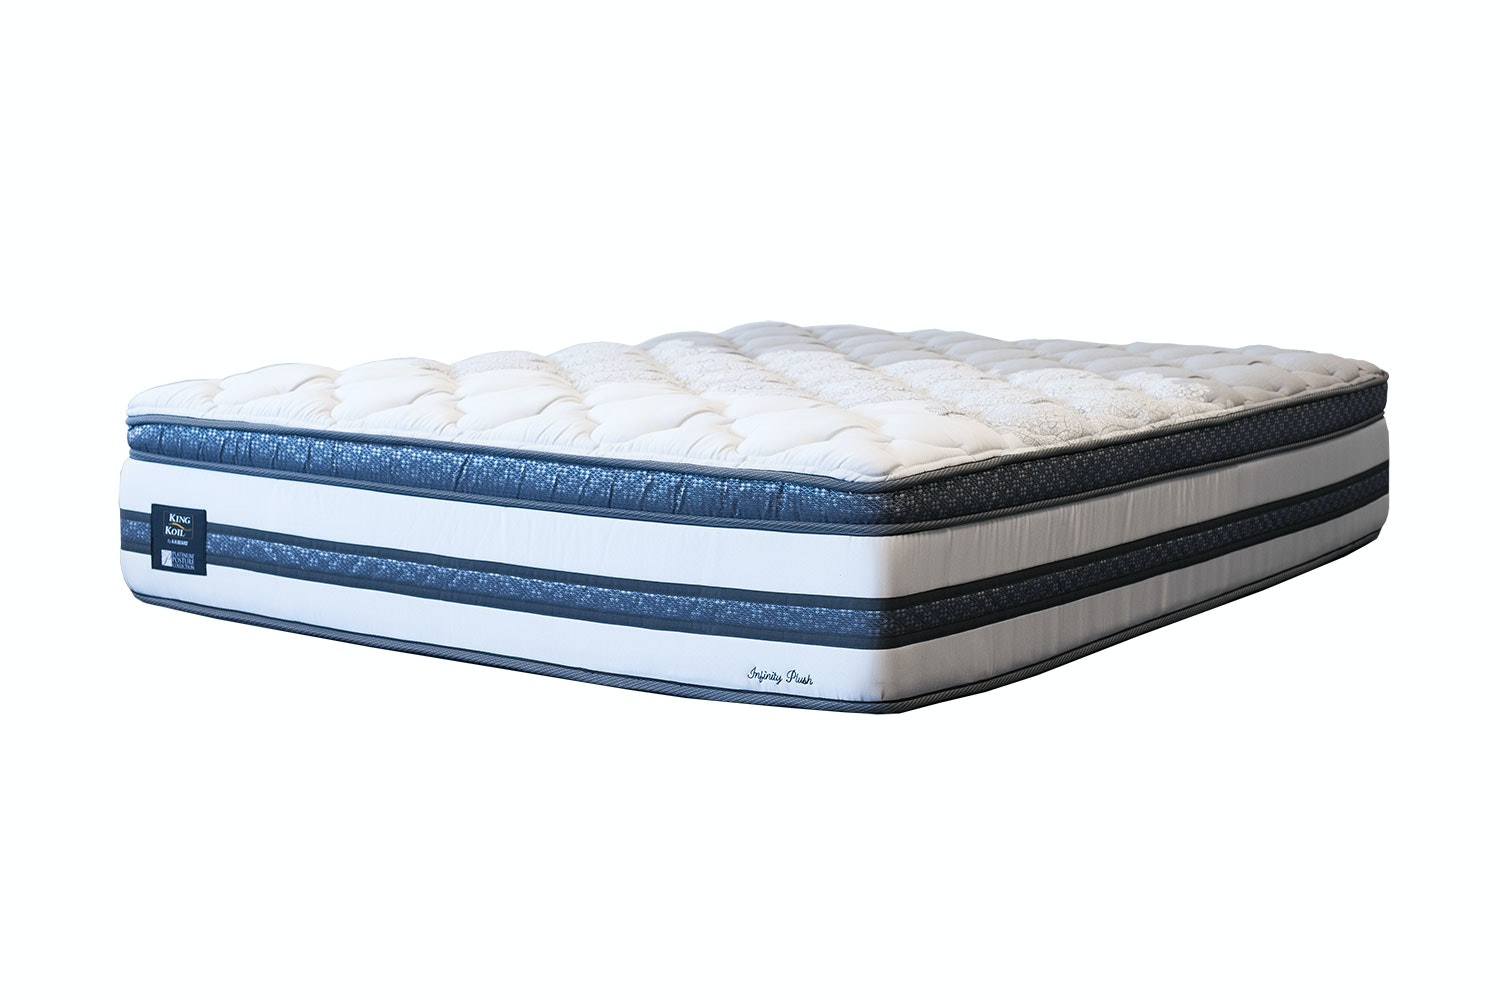 Infinity Plush Super King Mattress by King Koil